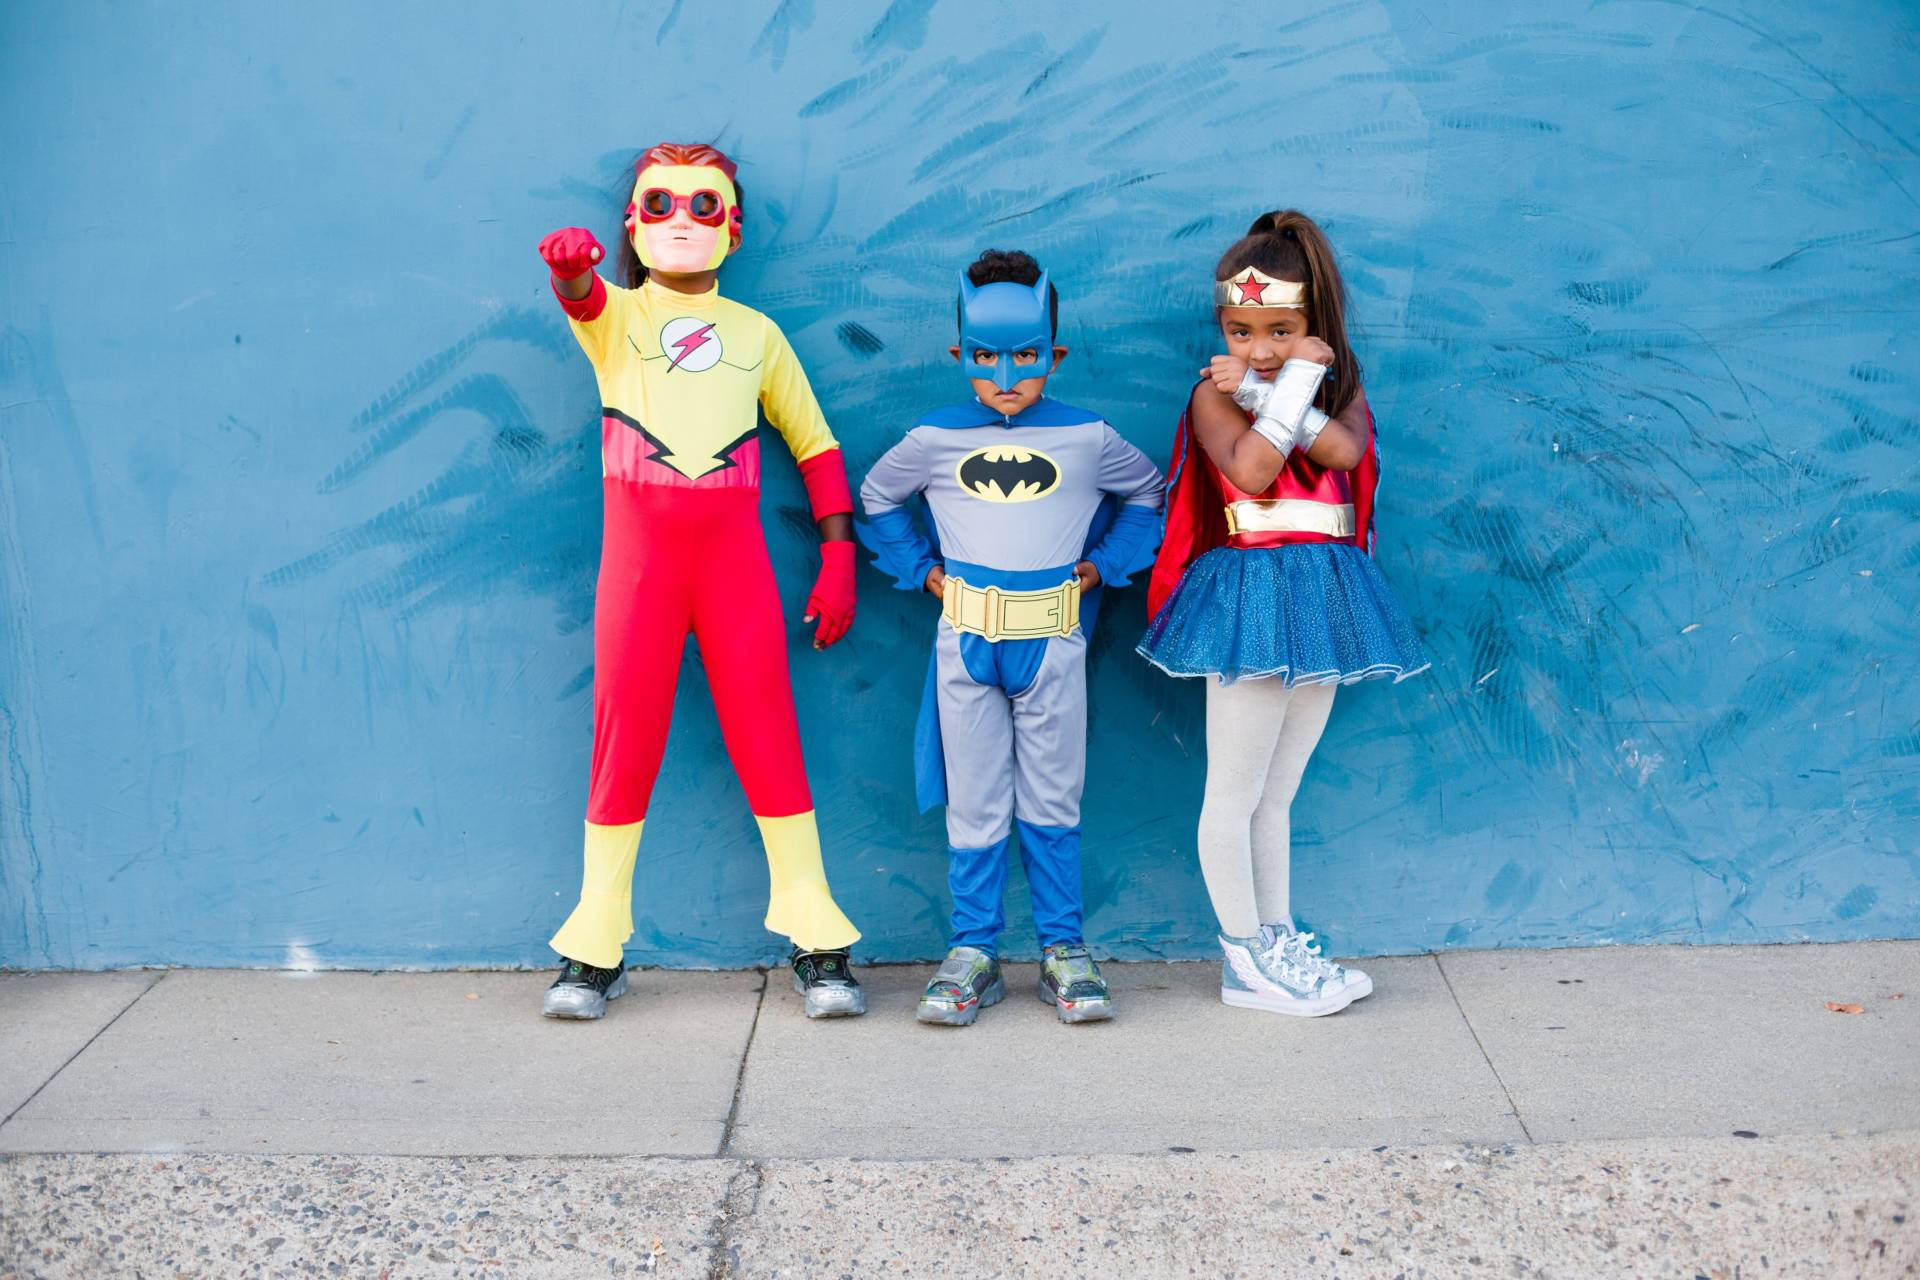 eadfdd924f9e I think the kids have been superheroes every year for Halloween! This year  we have flash Batman and wonder woman and boy are they taking on character!